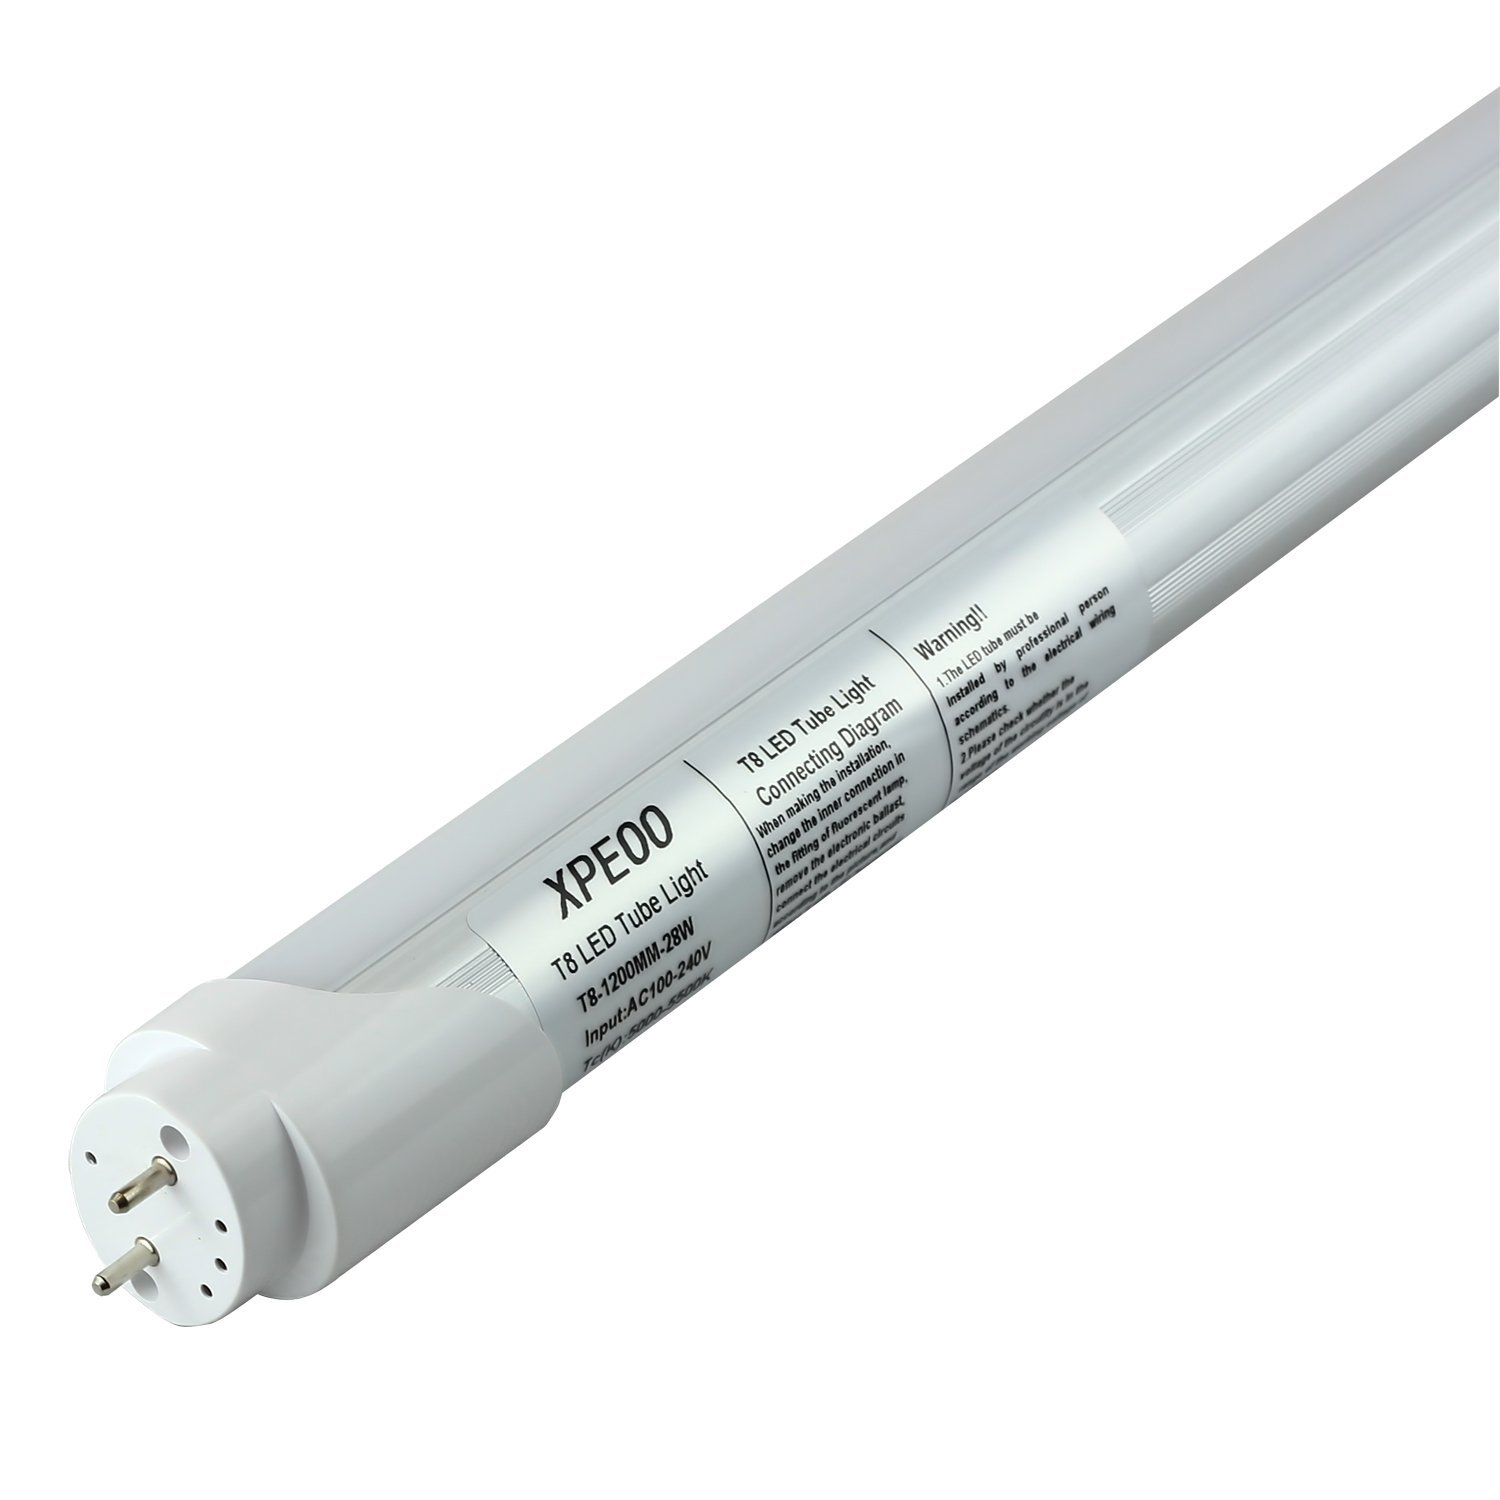 xpeoo t8 1200mm 28w 4ft energy saving daylight white led tube lamps check back soon blinq [ 1500 x 1500 Pixel ]